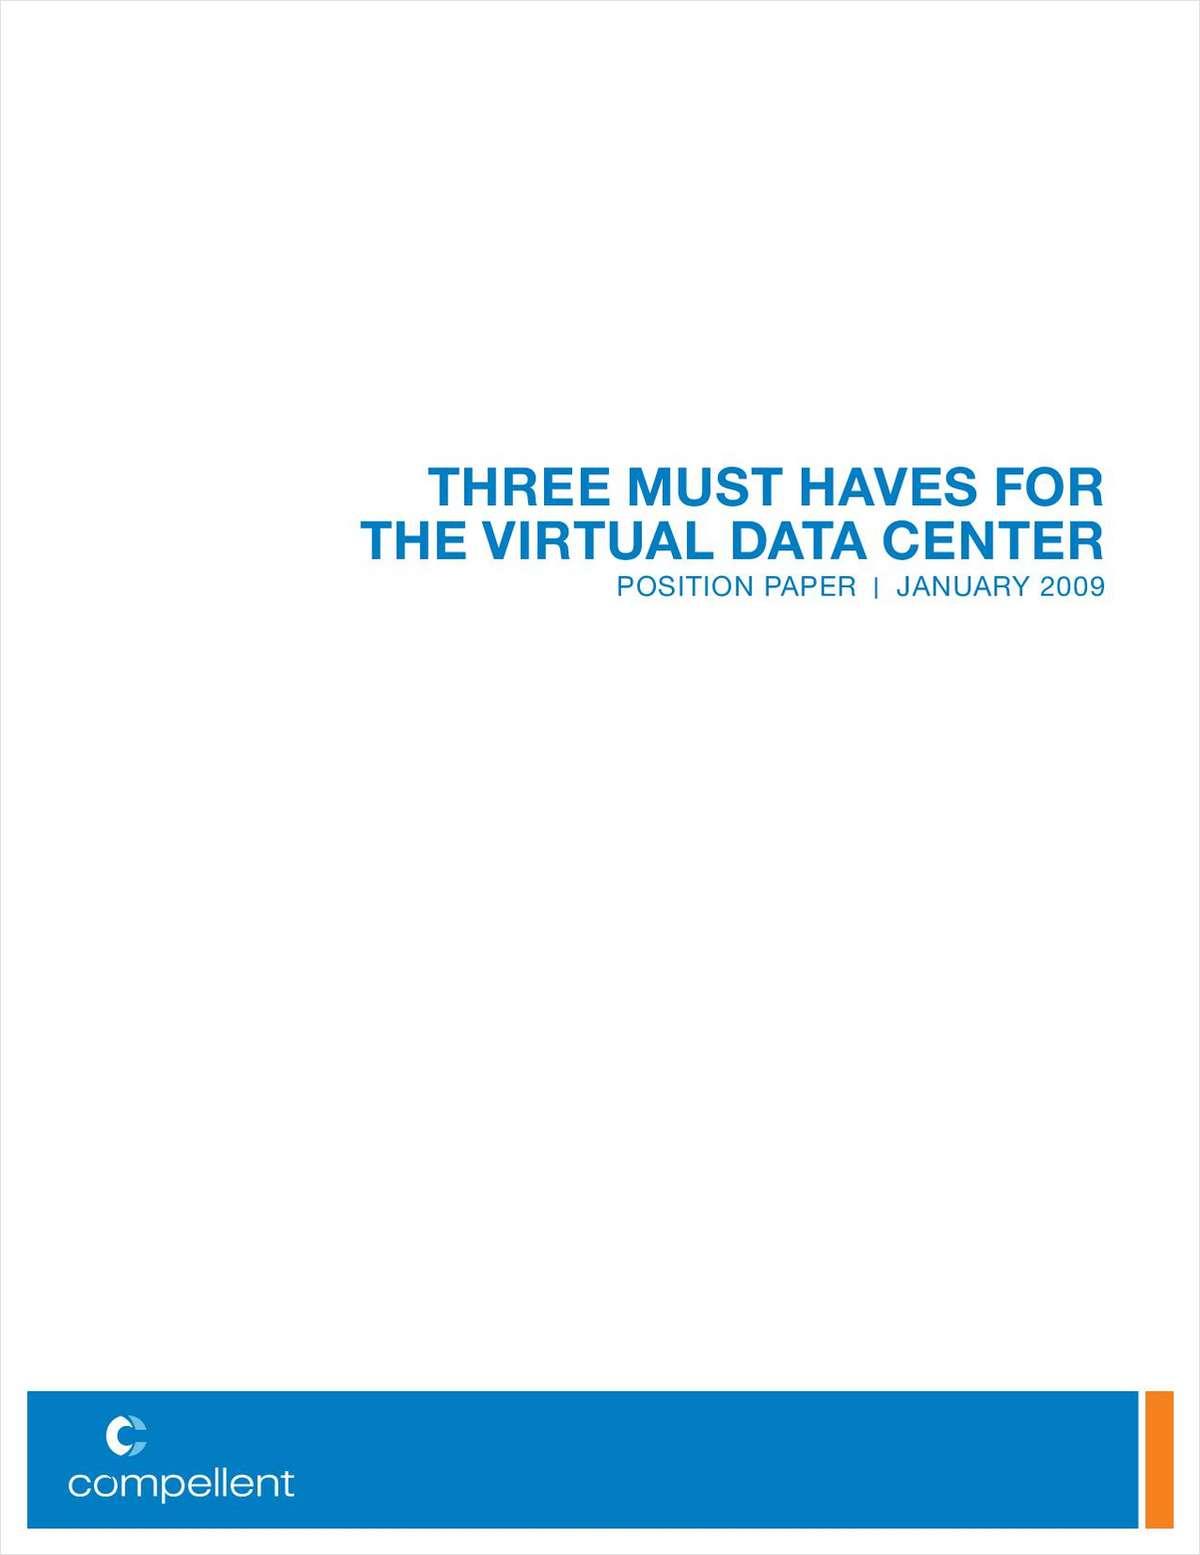 Three Must Haves for the Virtual Data Center